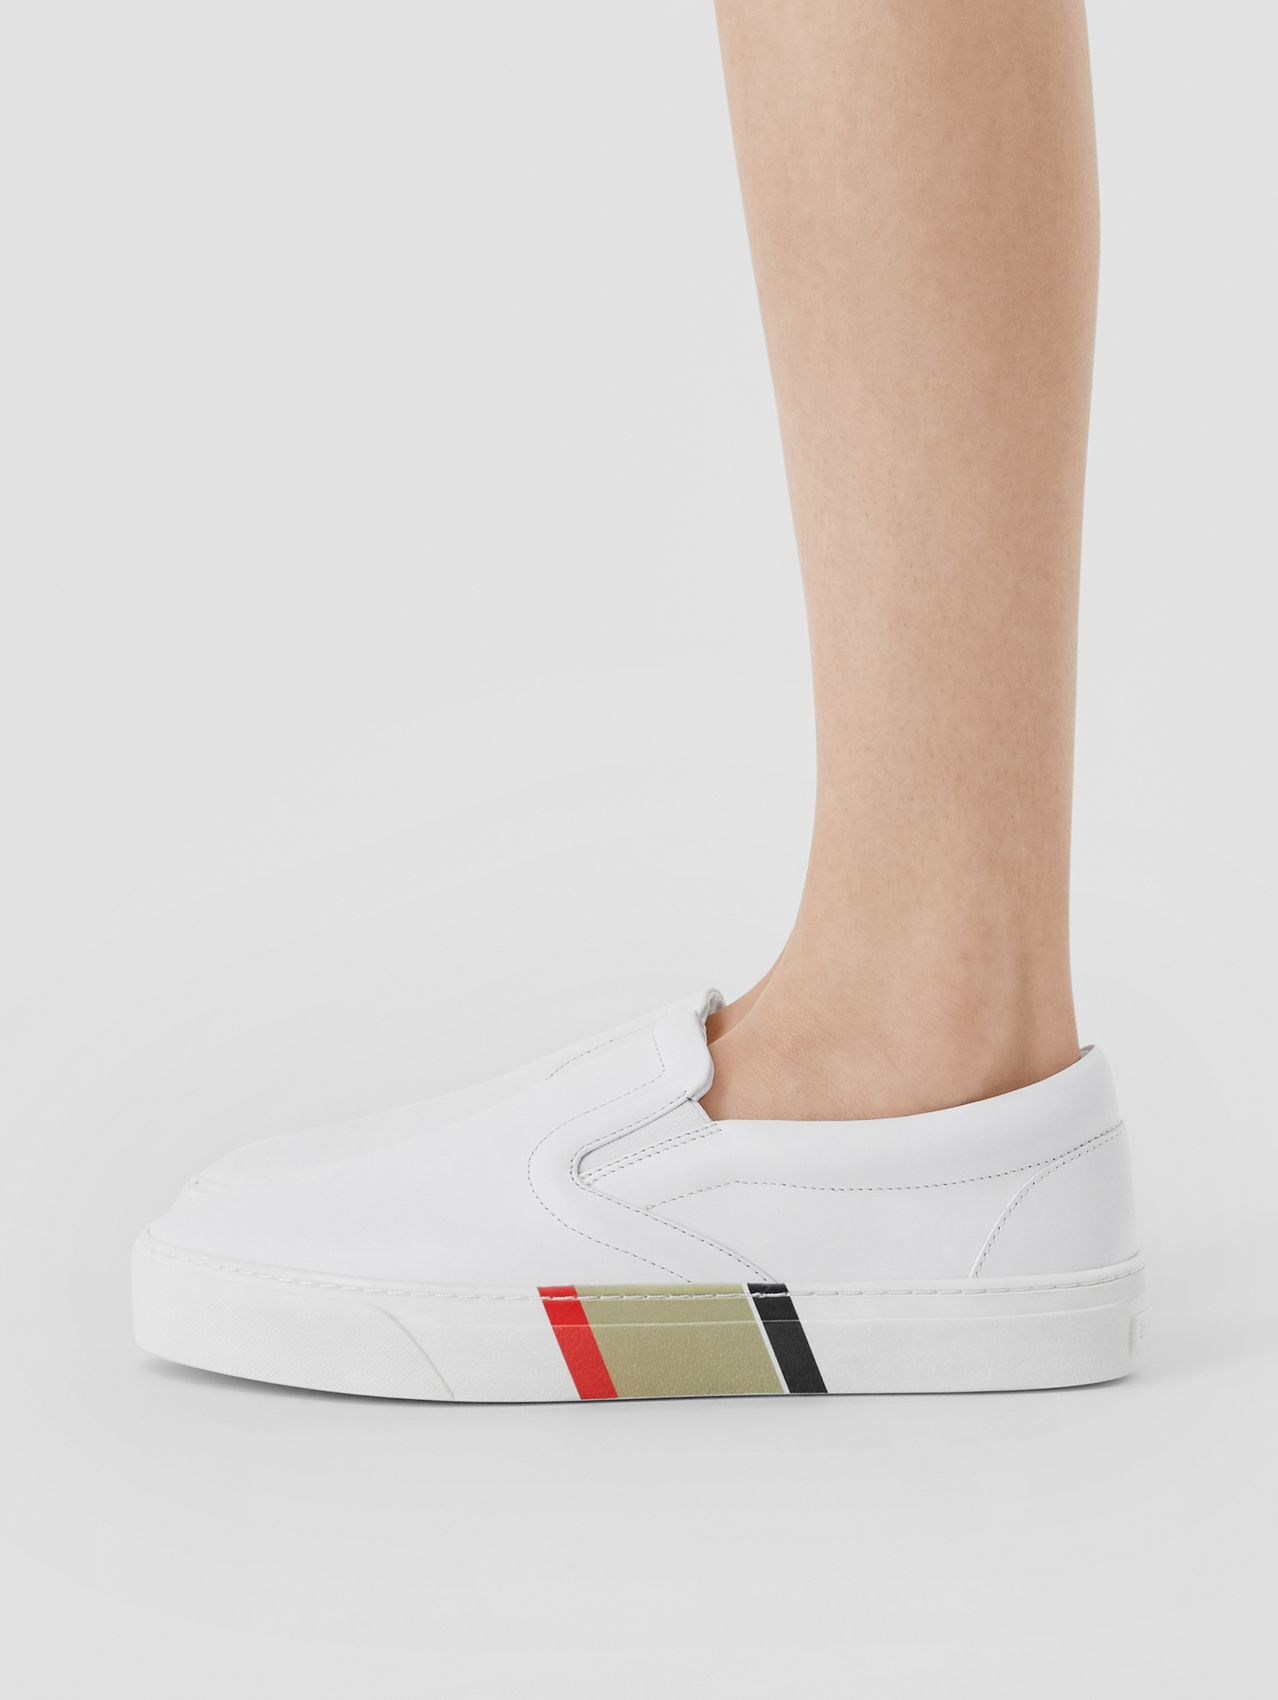 Bio-based Sole Stripe Print Leather Slip-on Sneakers in Optic White